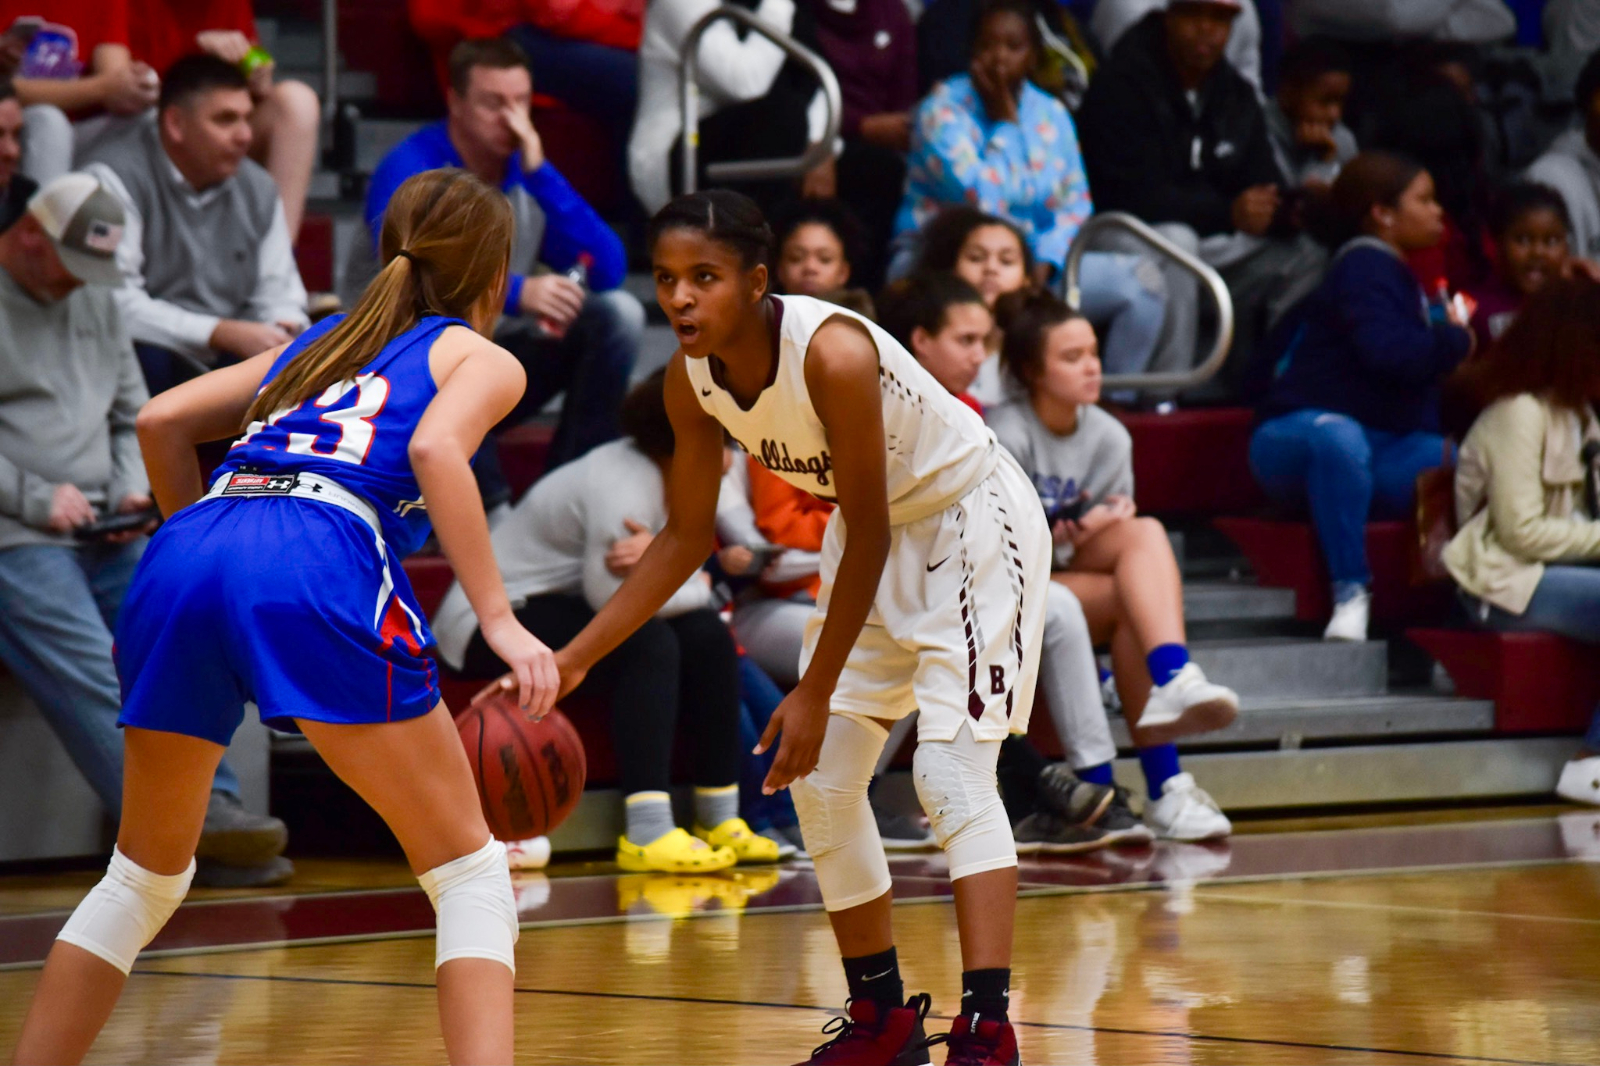 Lady Bulldogs' experience carries them to region championship, one win from state